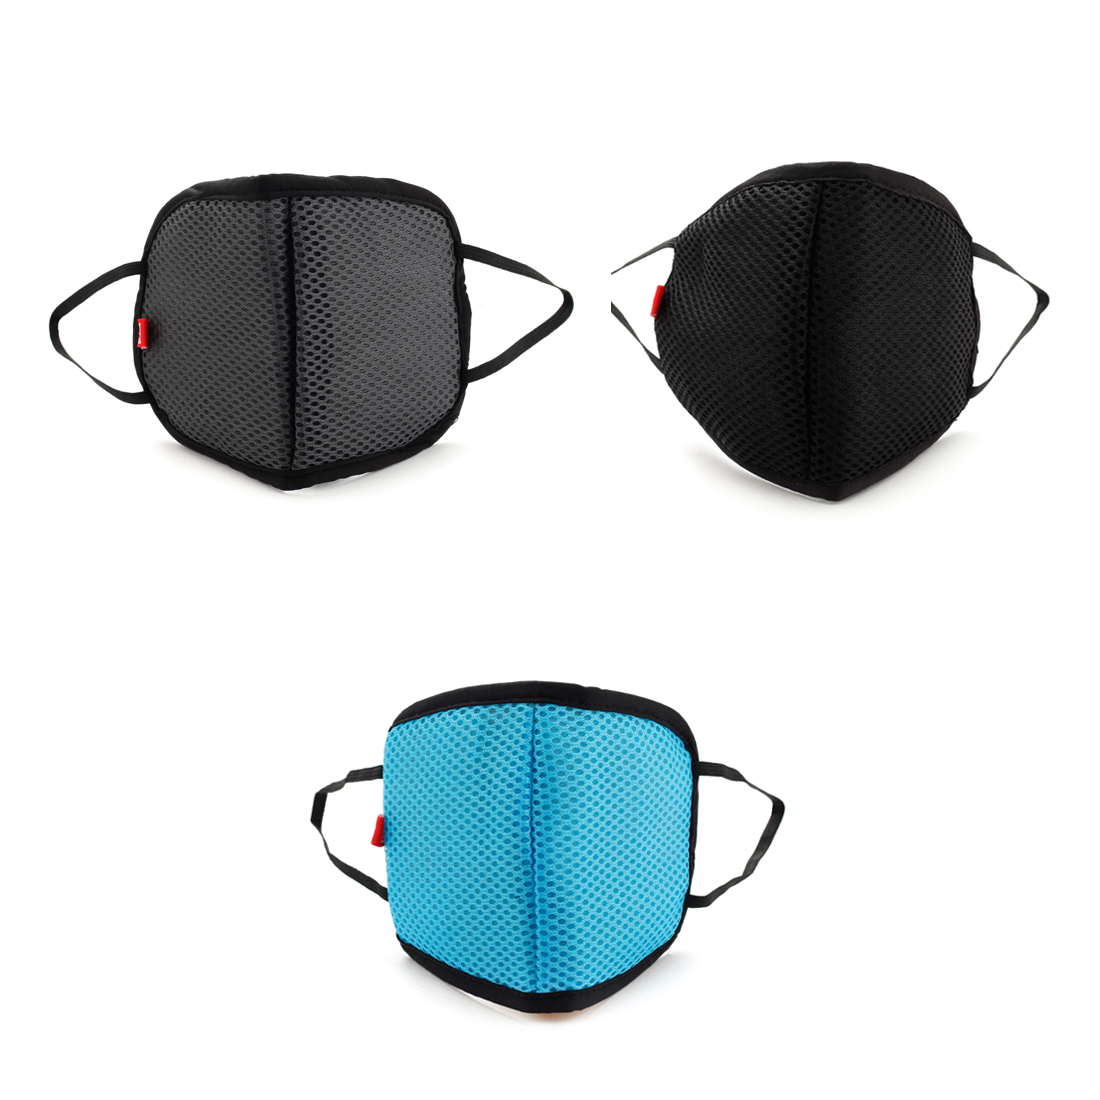 Trends & Trades | Trends & Trades Reusable Face Mask (Pack 3)